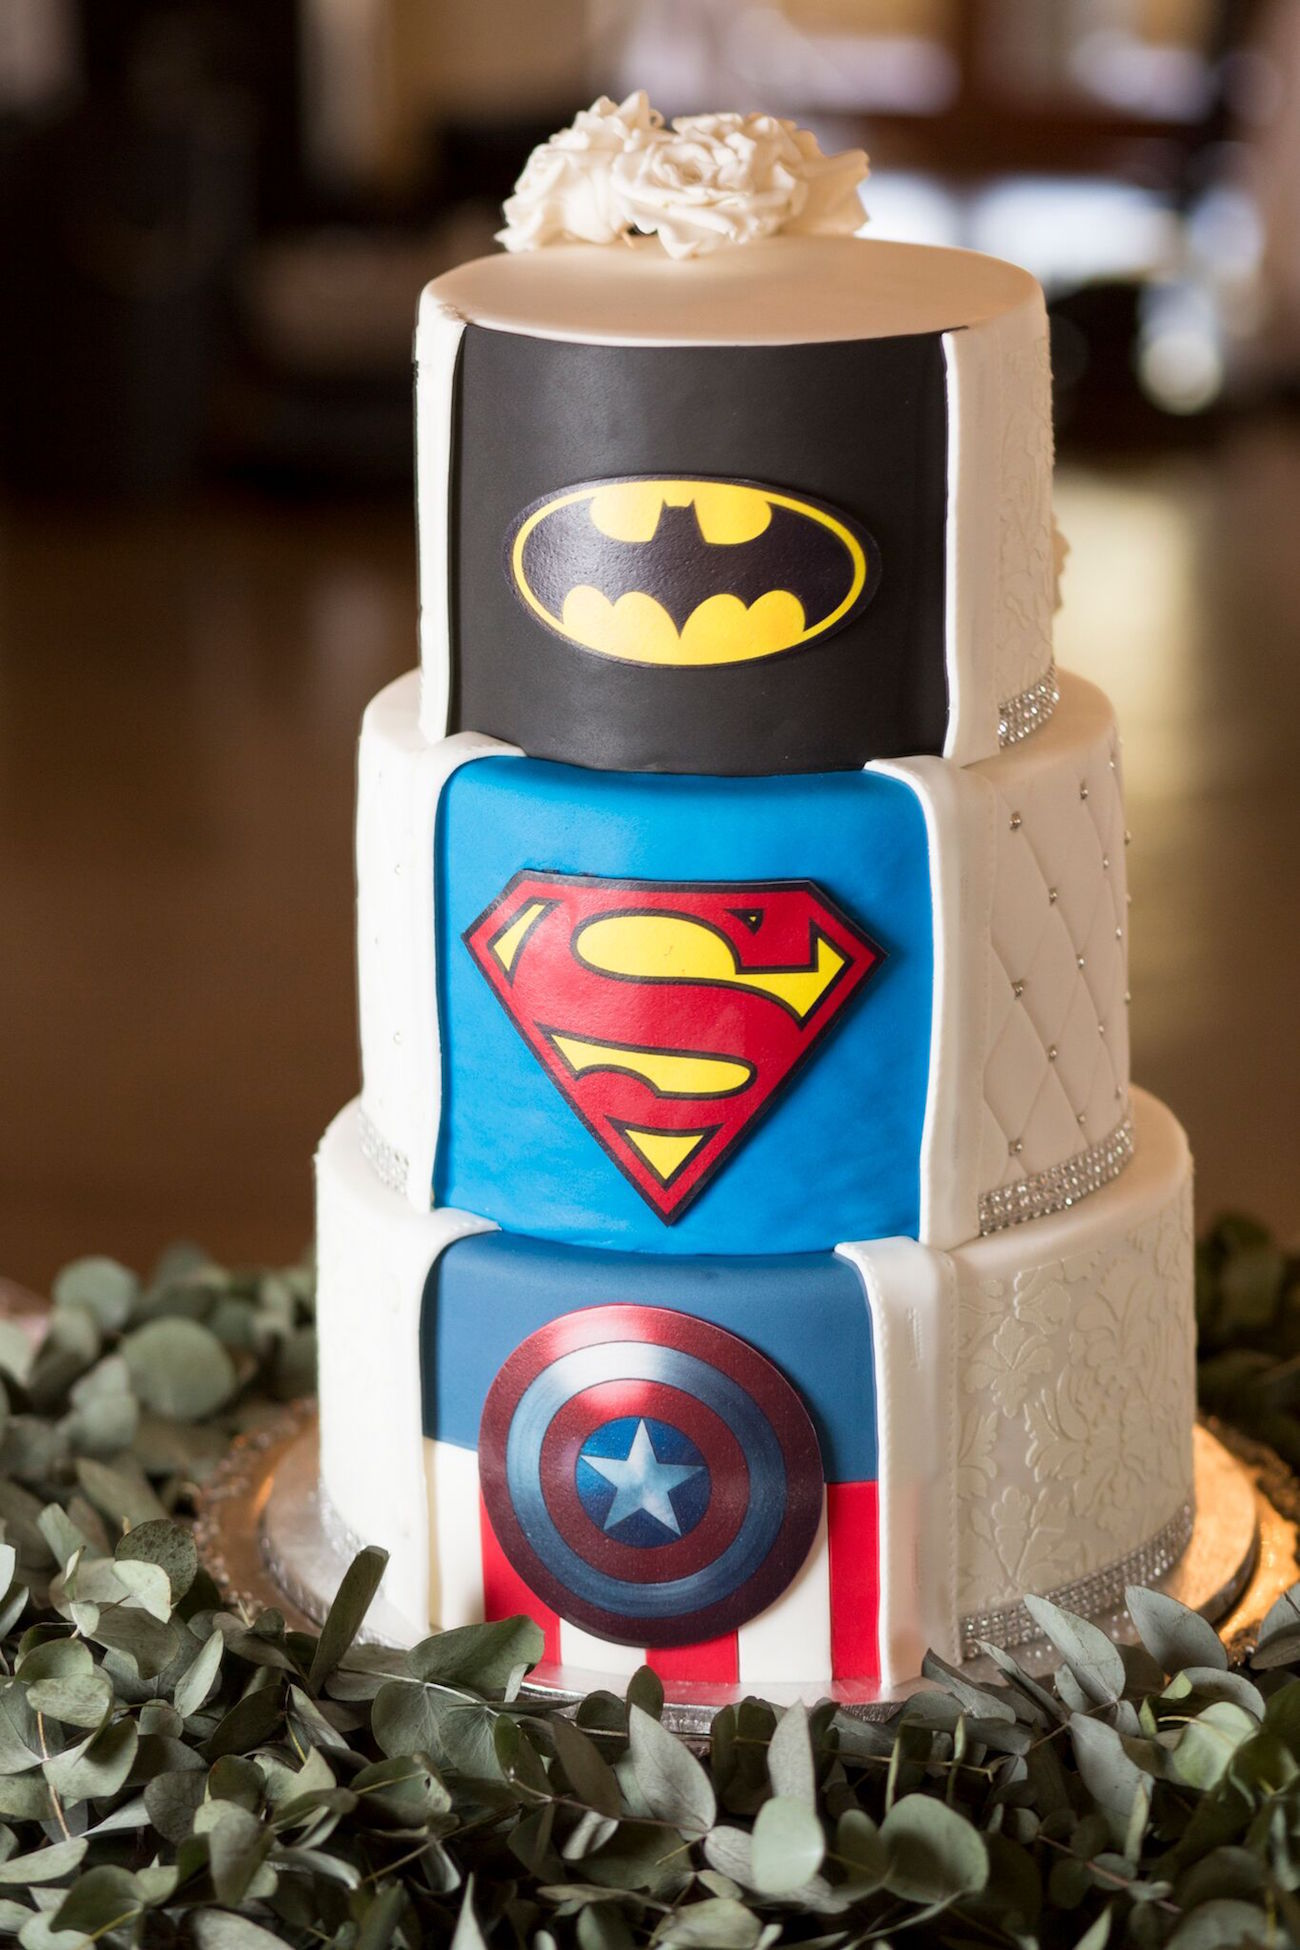 Superhero Surprise Wedding Cake Batman Superman Captain America | Image: Daniel West